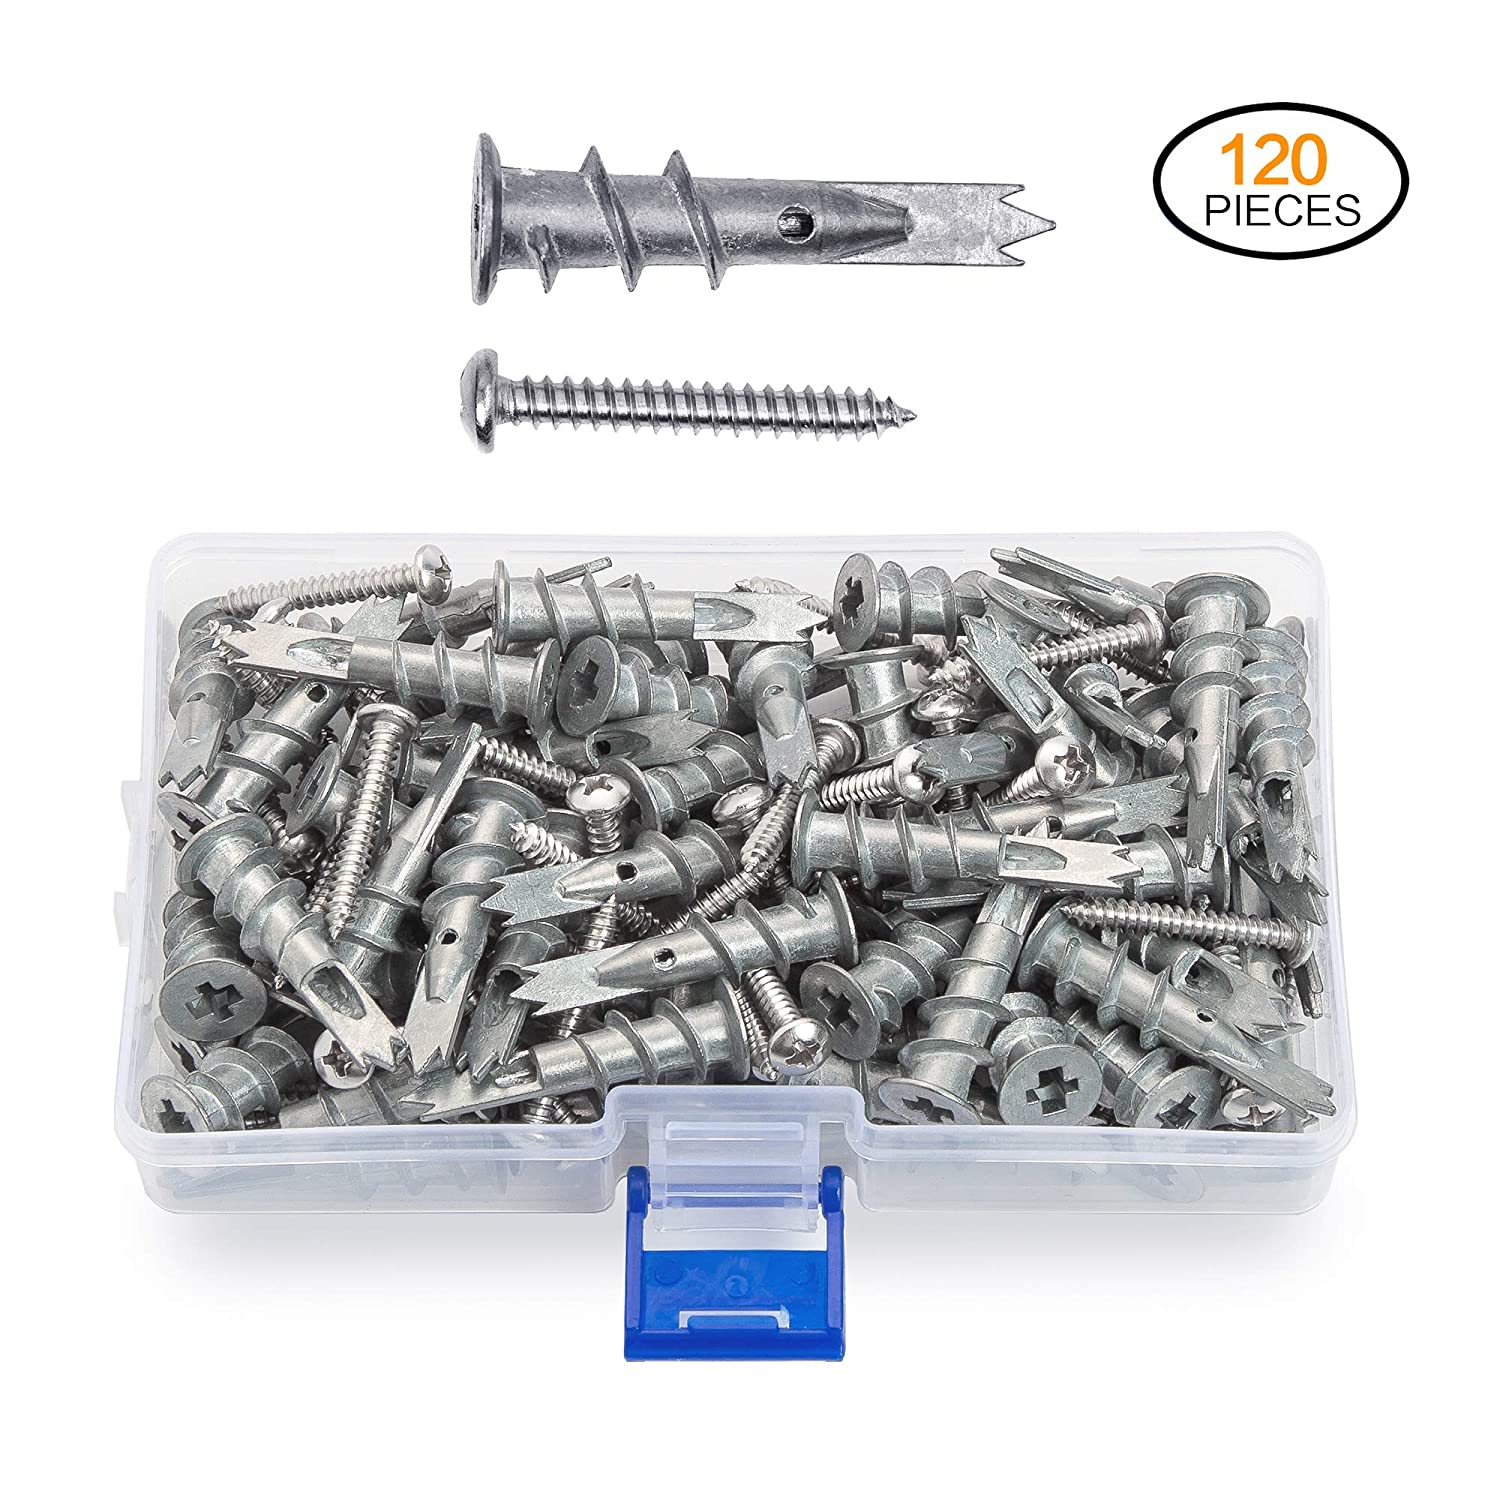 JUIDINTO Zinc Drywall Anchors with Screws Self Drilling Hollow Wall Anchors M4.2 Tapping Screws Assortment Kit,120 pcs